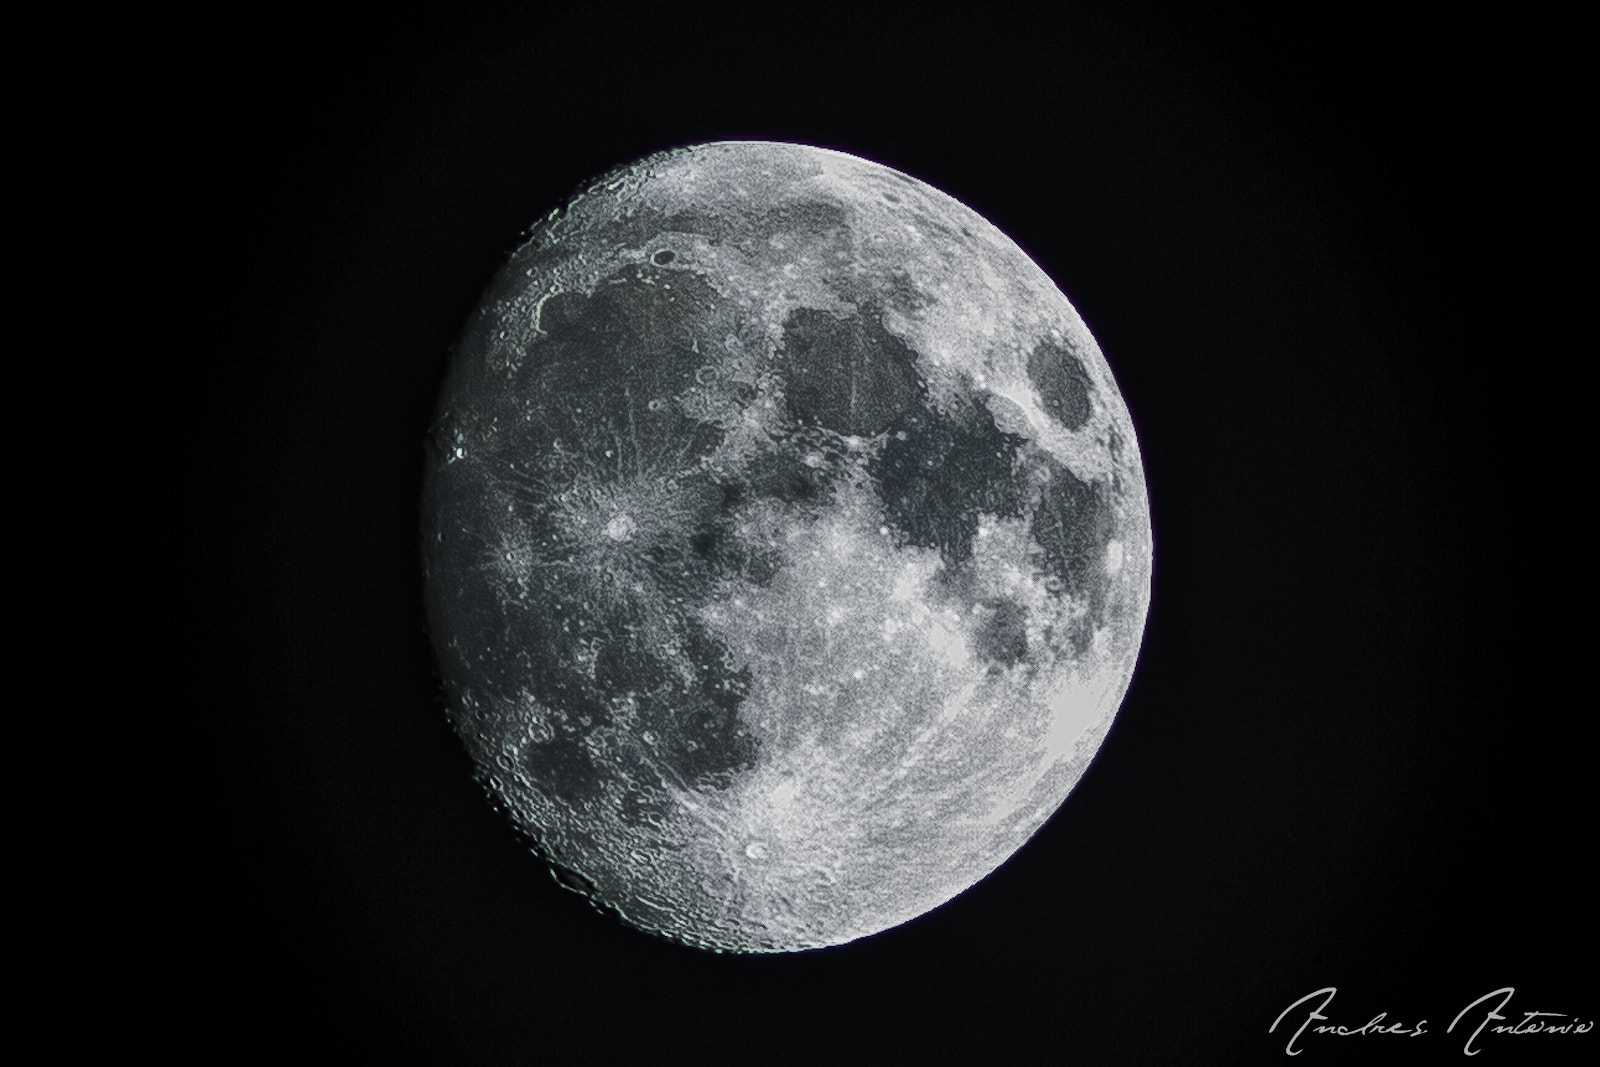 Photograph moon by Andres Antonio on 500px